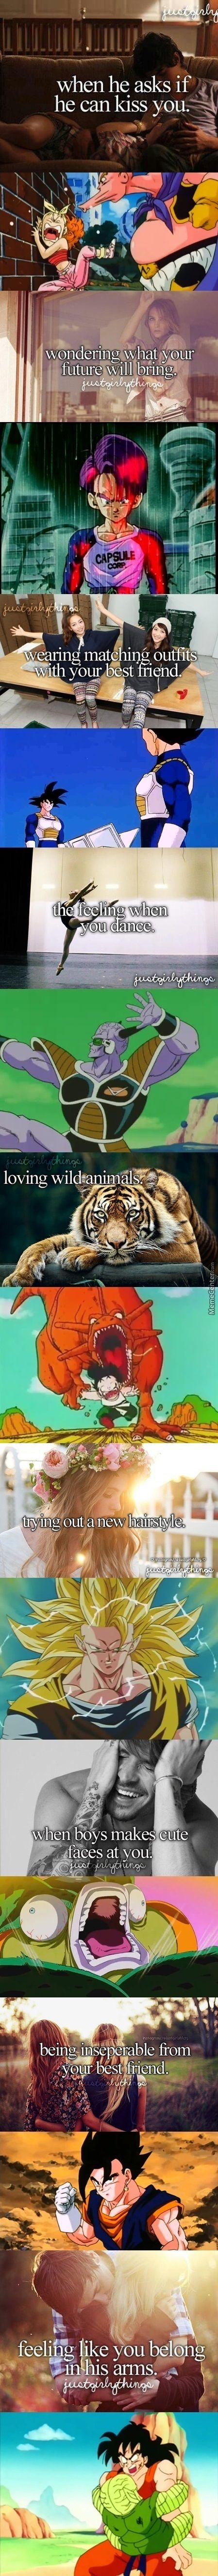 Lol this is too funny! - dragon ball z